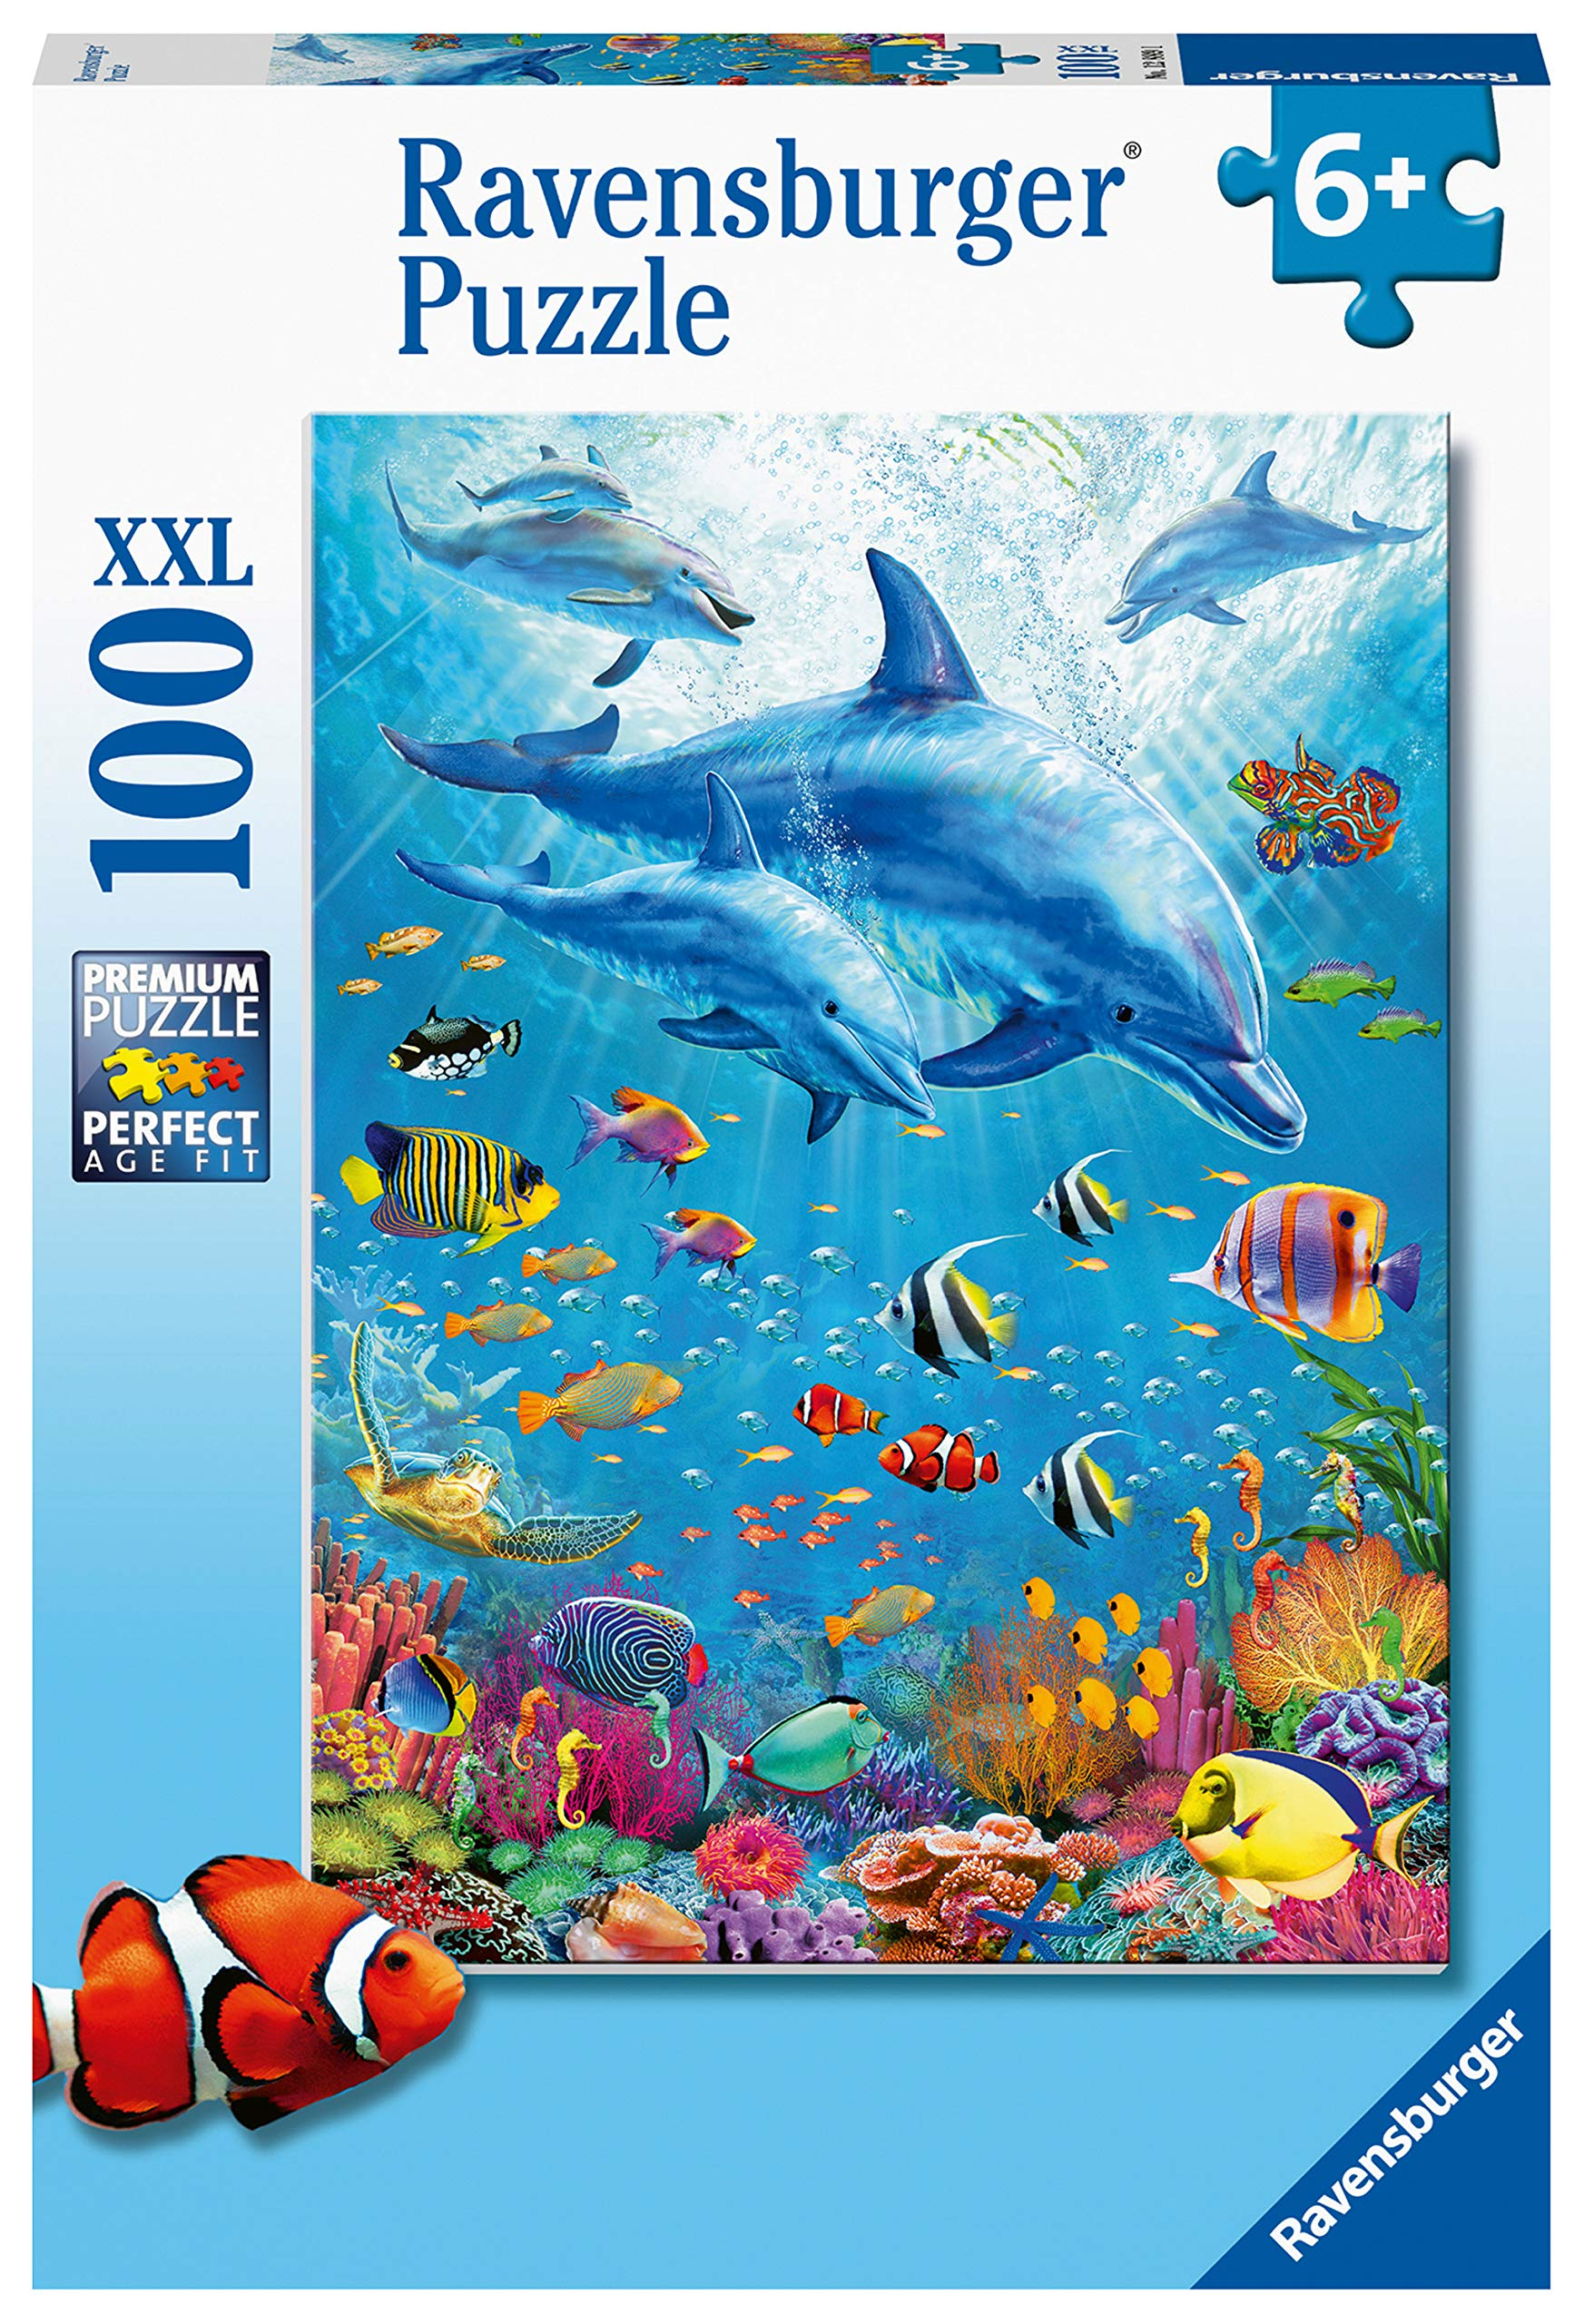 Ravensburger 12889 Pod of Dolphins 100 Jigsaw Puzzle with Extra Large Pieces for Kids Age 6 Years and up